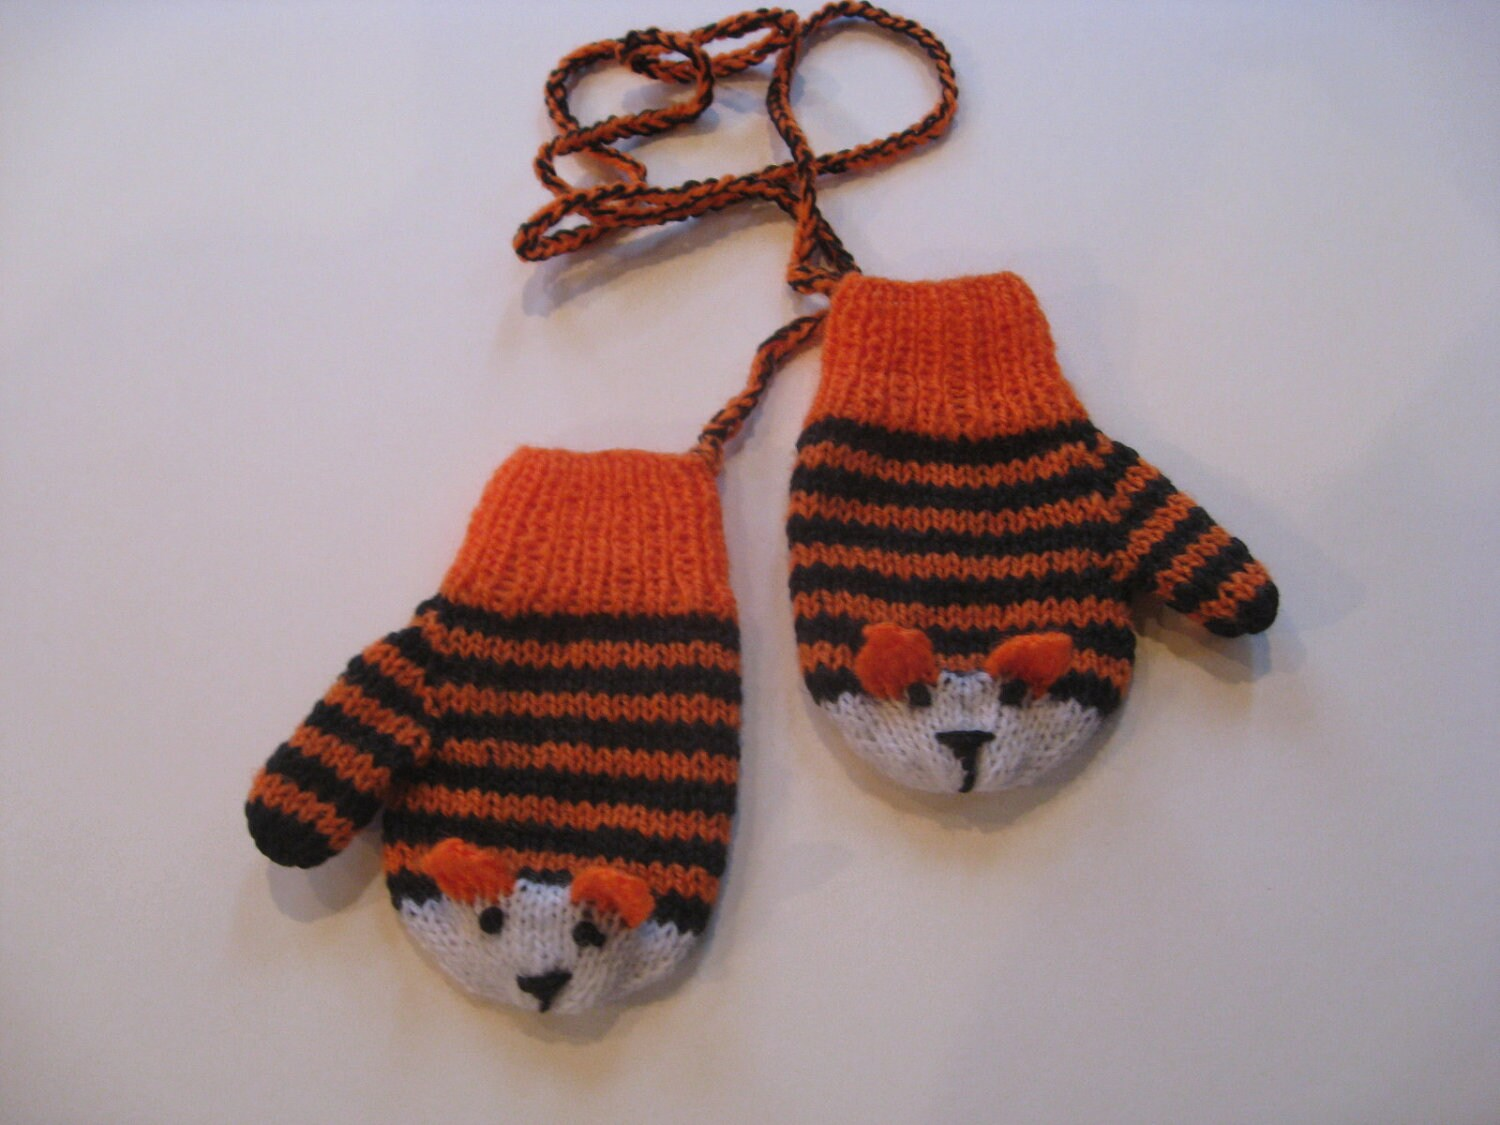 Child Tiger Mittens on a String/Cord (size 2)